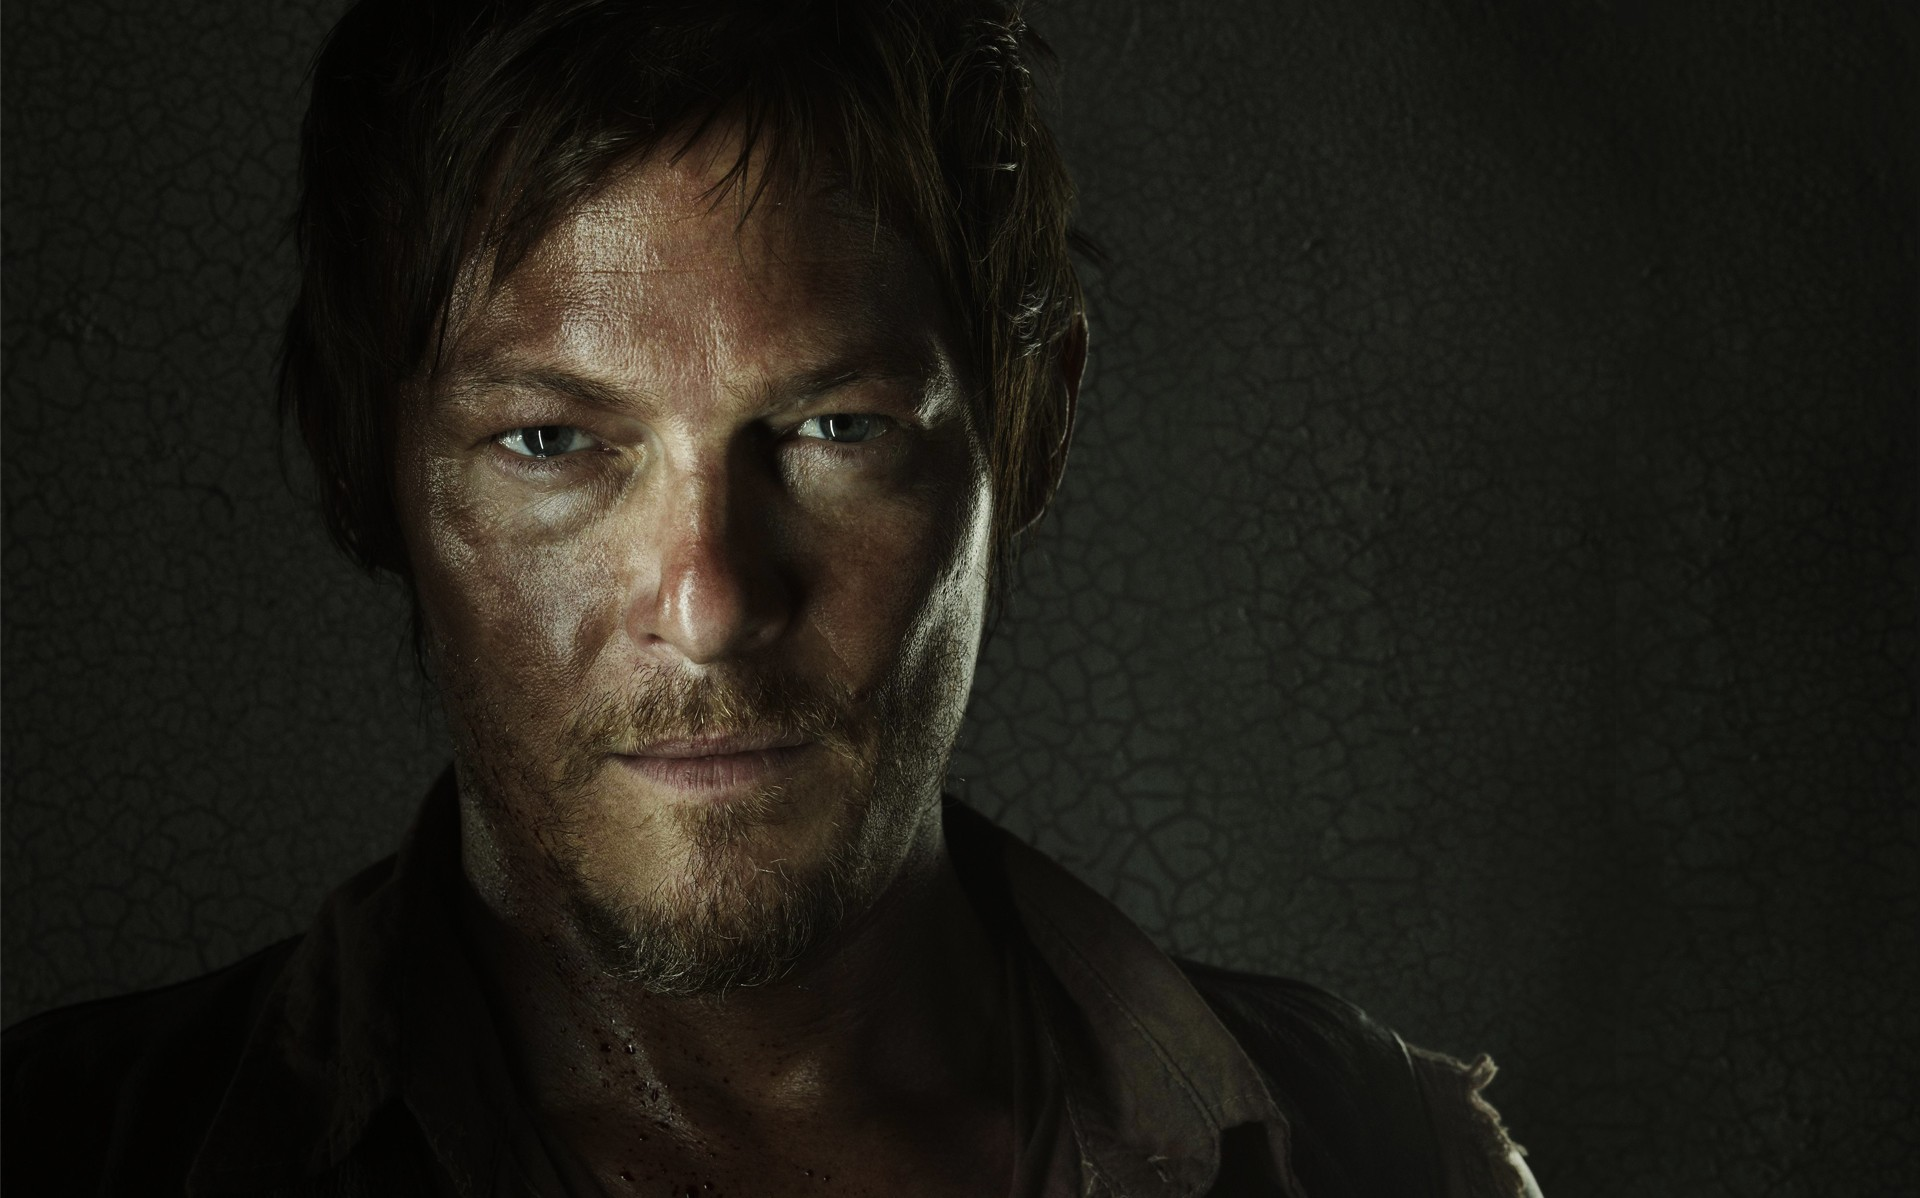 Walking Dead Wallpapers For Android: Daryl Dixon Wallpaper ·① Download Free Awesome HD